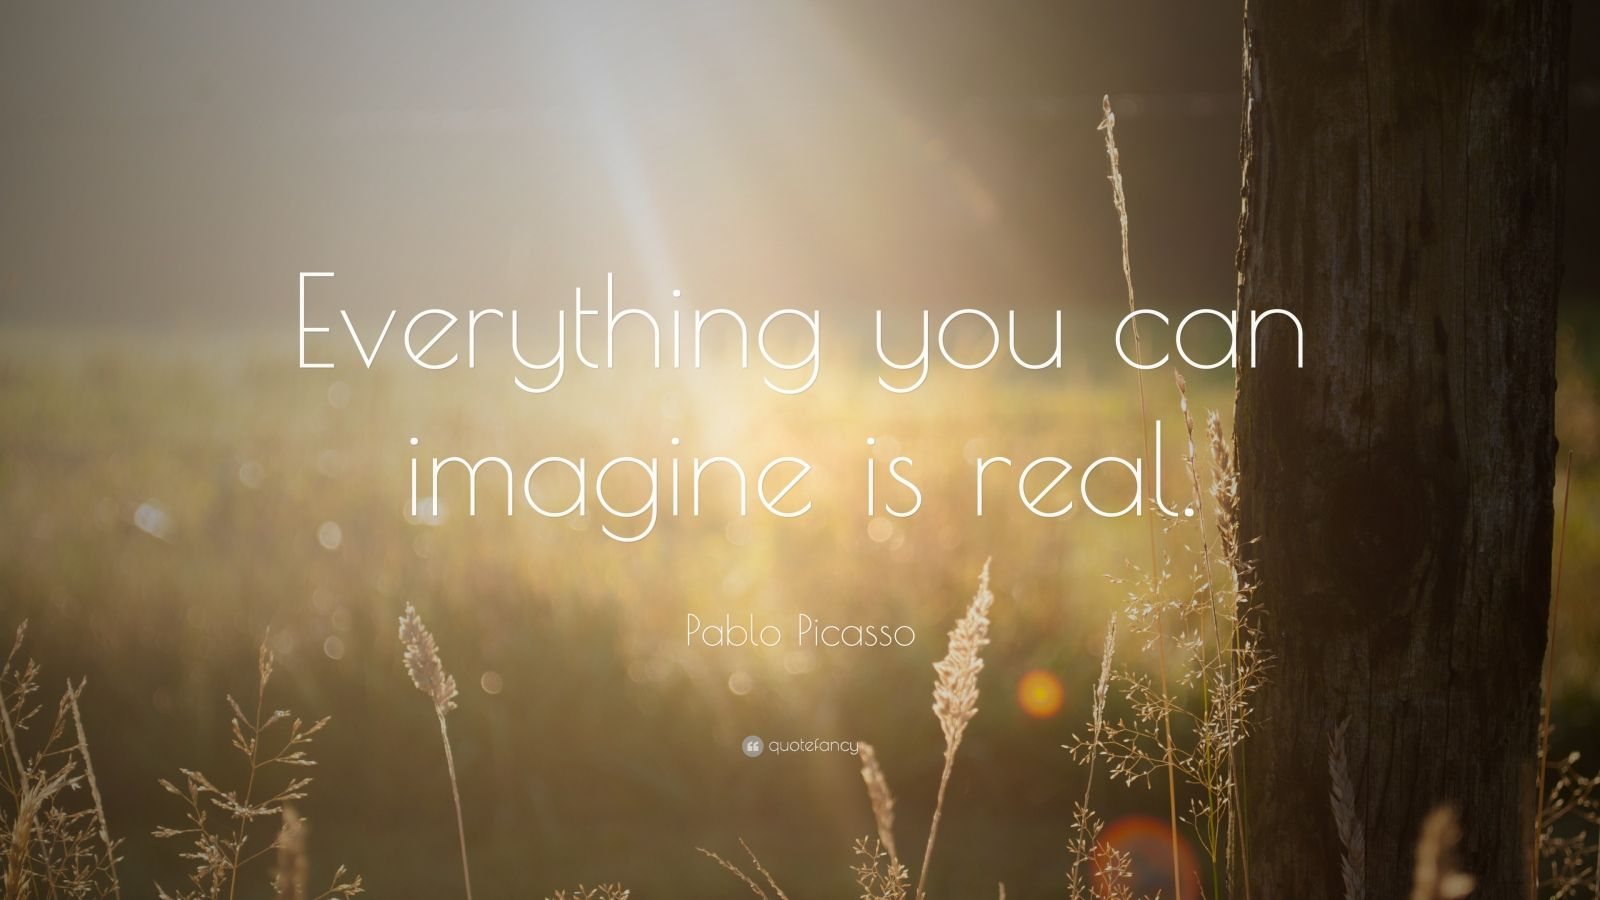 John Lennon Quotes Wallpaper Pablo Picasso Quote Everything You Can Imagine Is Real